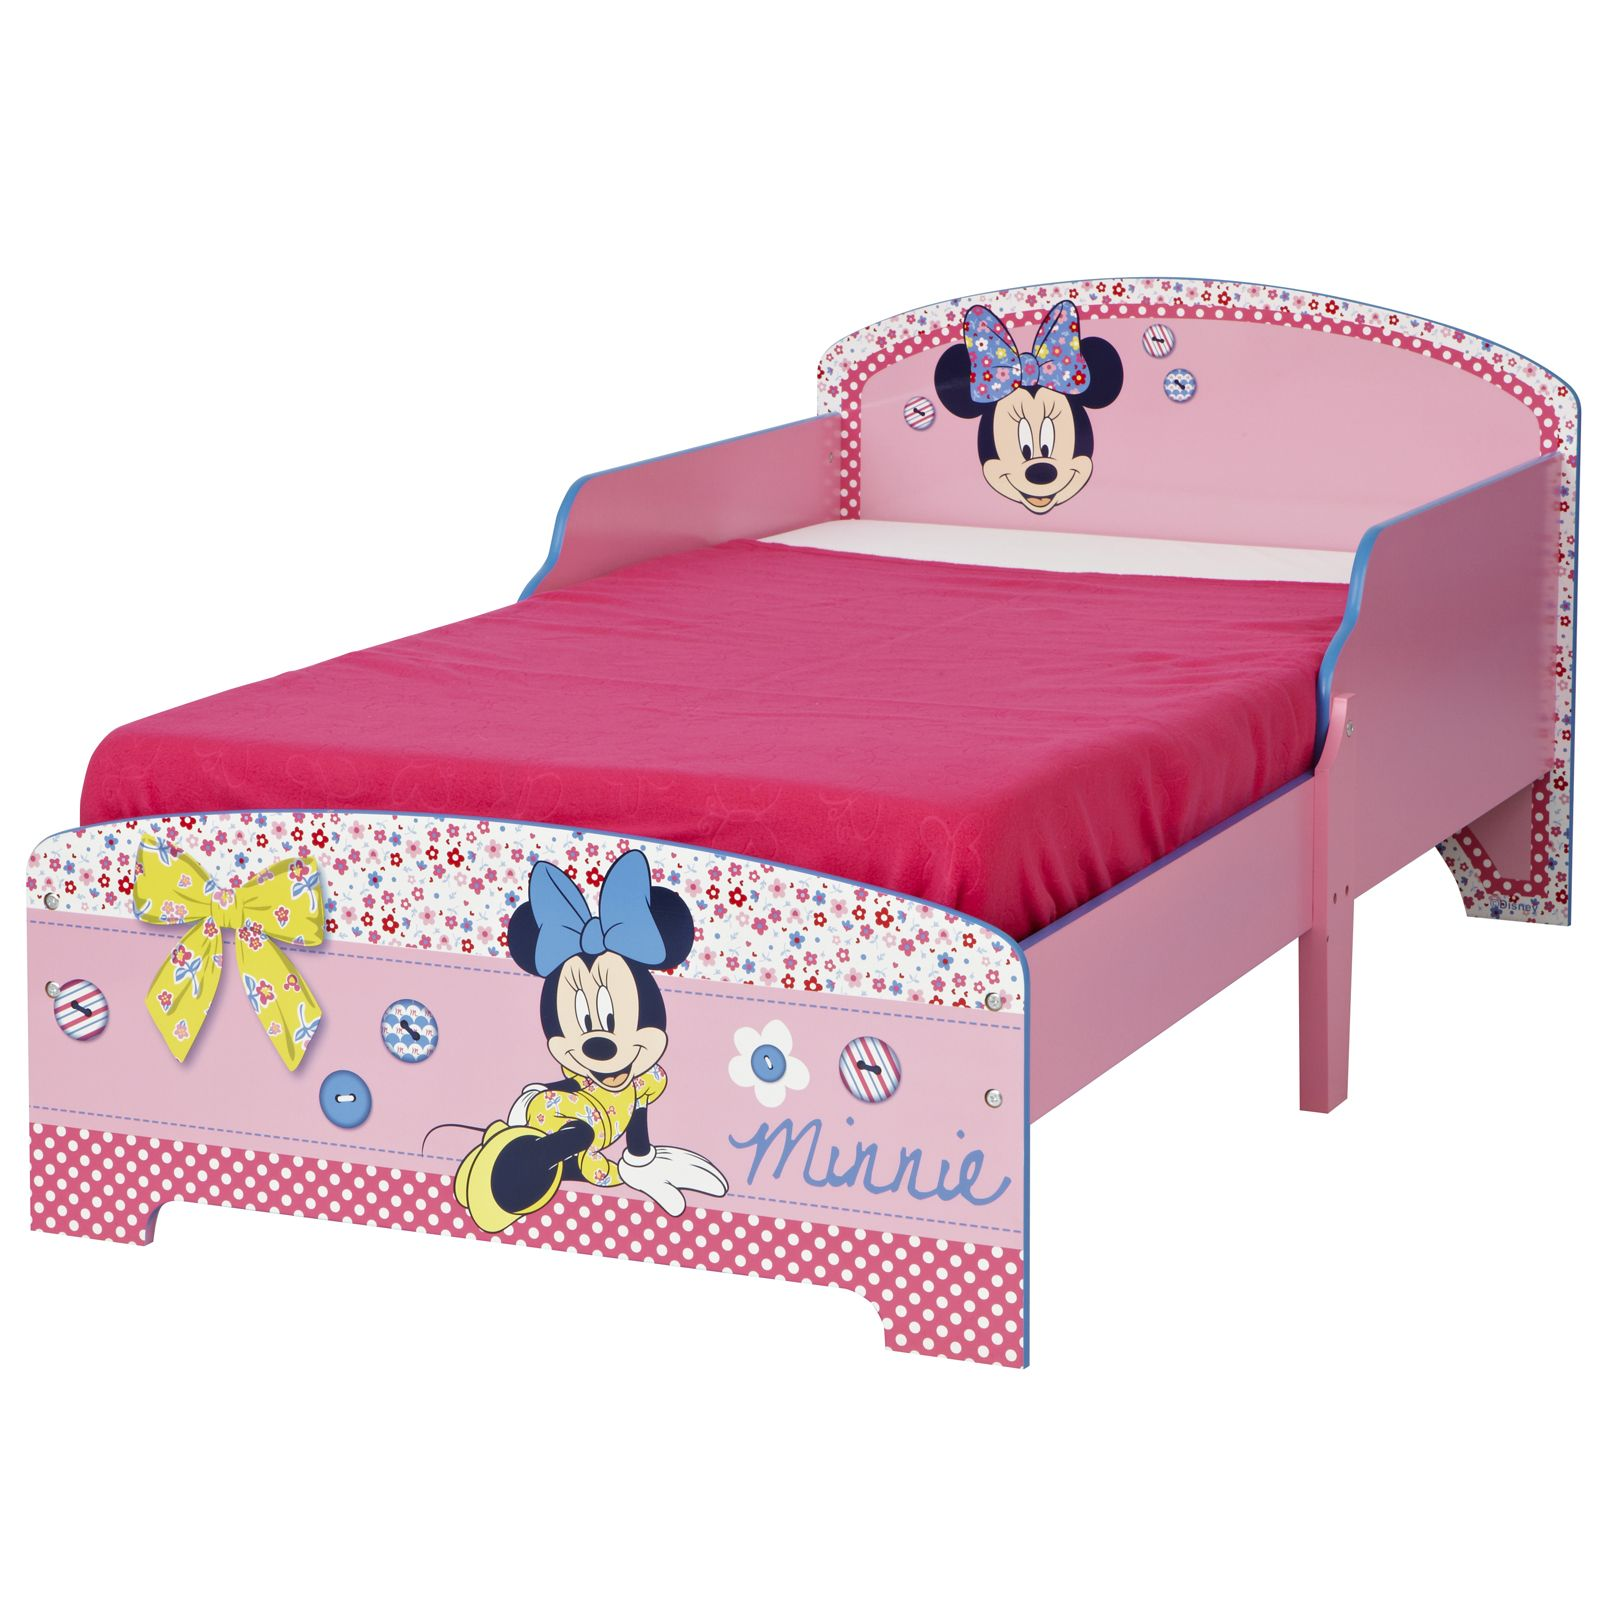 Character Toddler Beds Without Storage Disney Cars Peppa